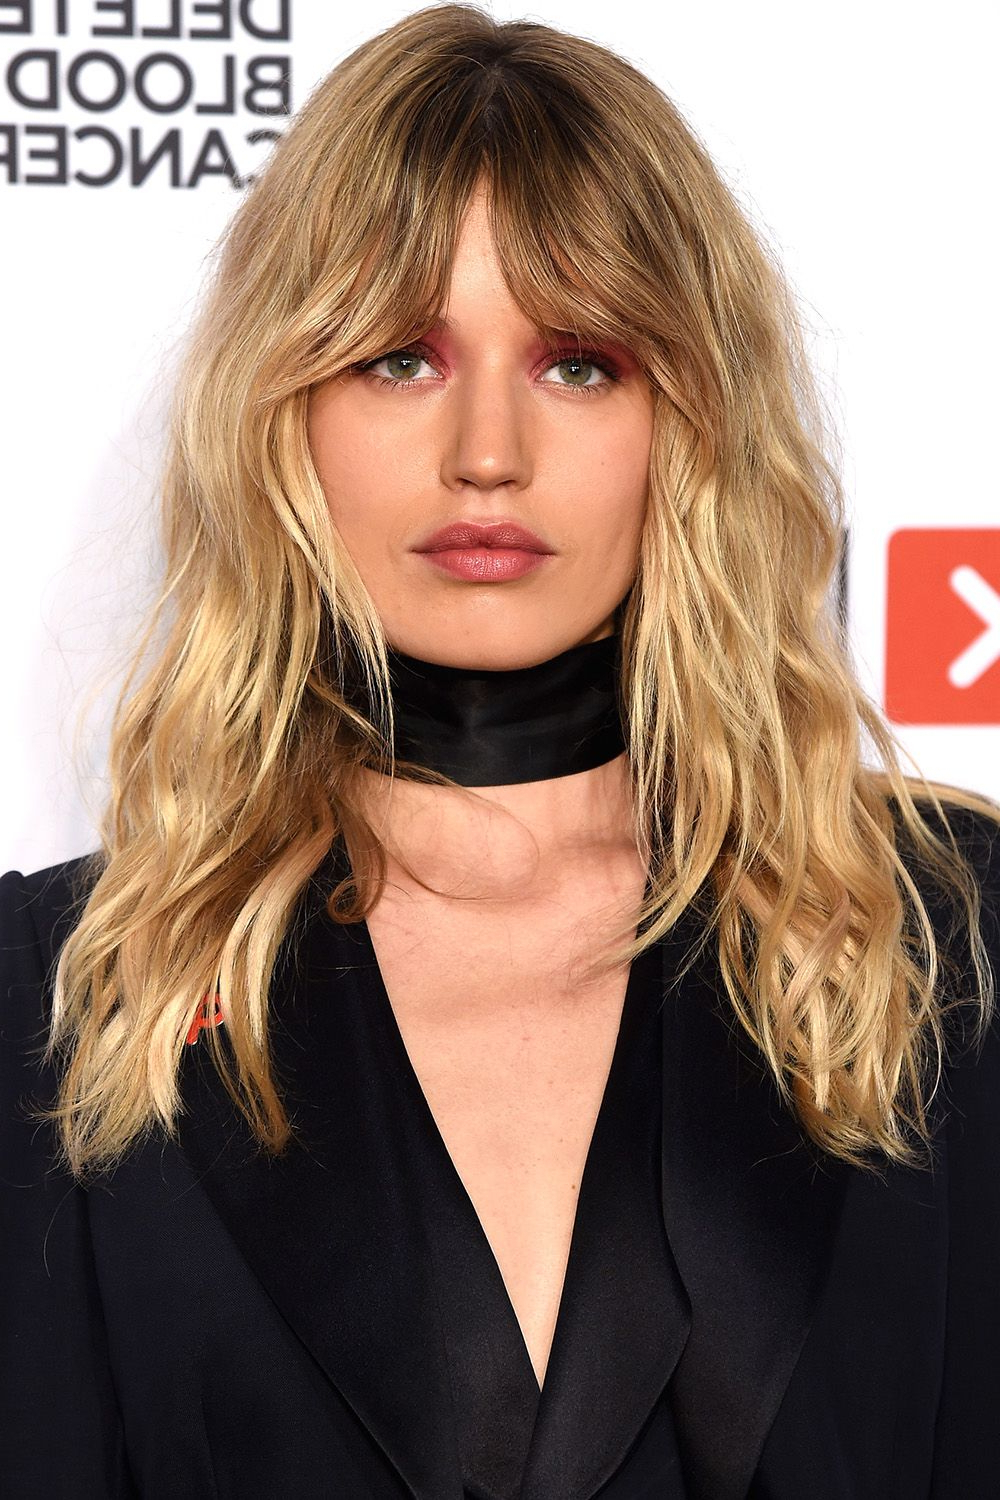 40 Best Medium Hairstyles – Celebrities With Shoulder Length Haircuts In Preferred Medium Hairstyles For Petite Faces (View 3 of 20)